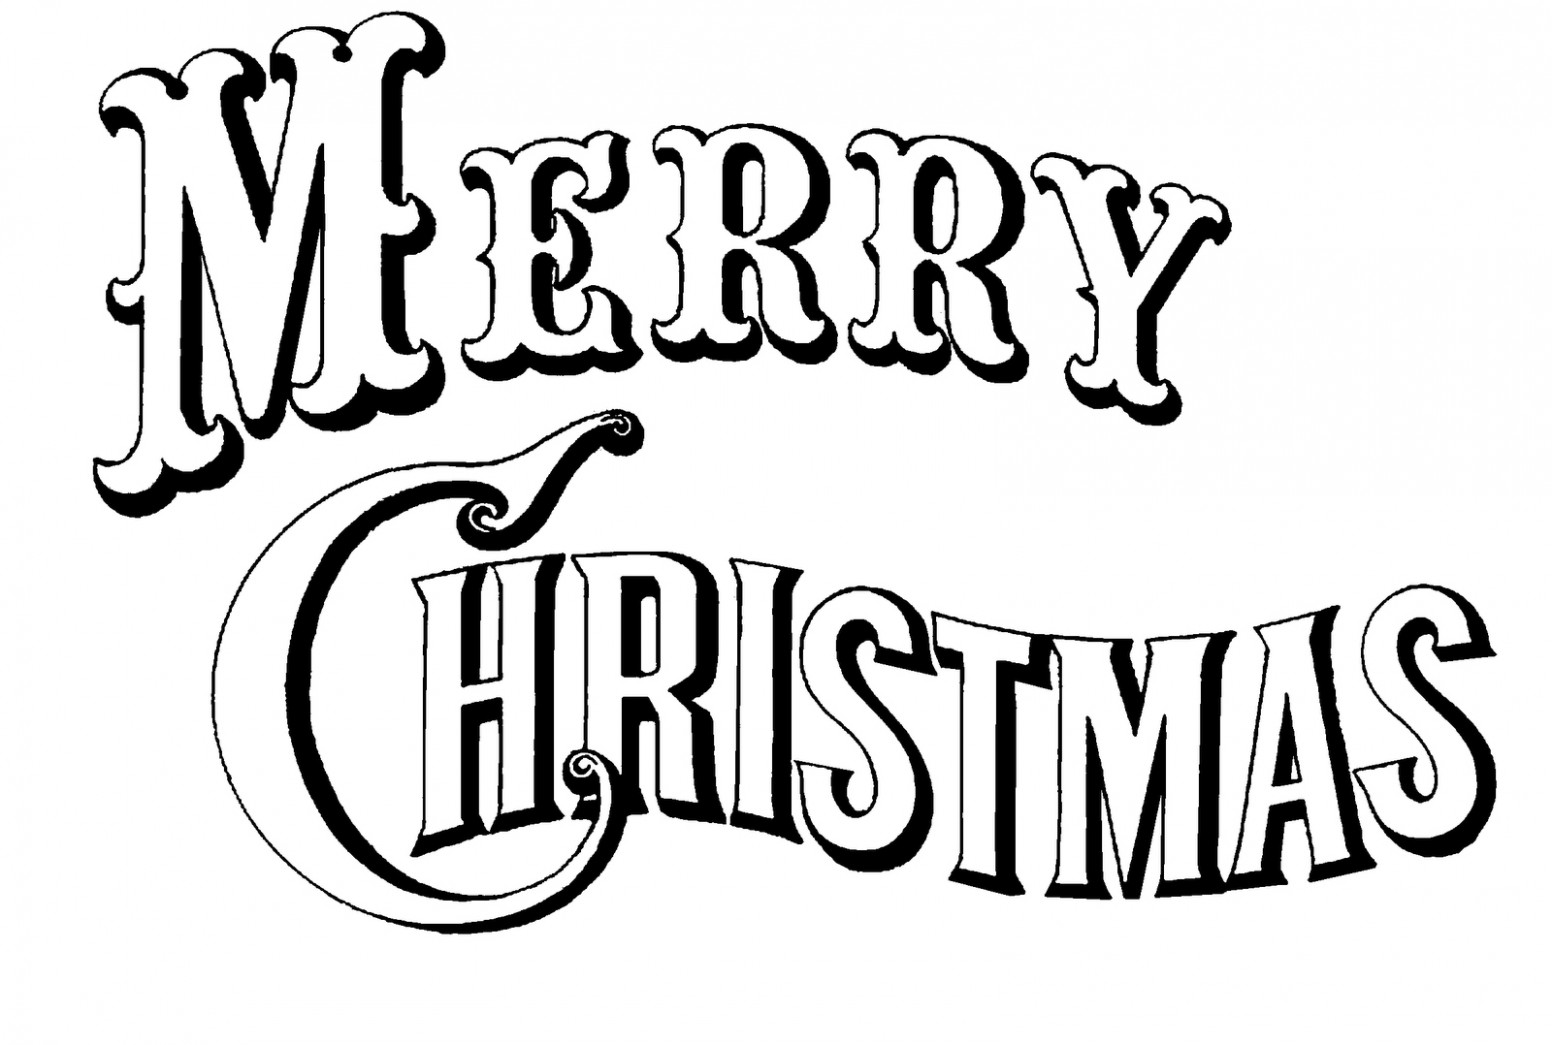 Merry Christmas Coloring Pages To Print - Free Printable Calendar ...